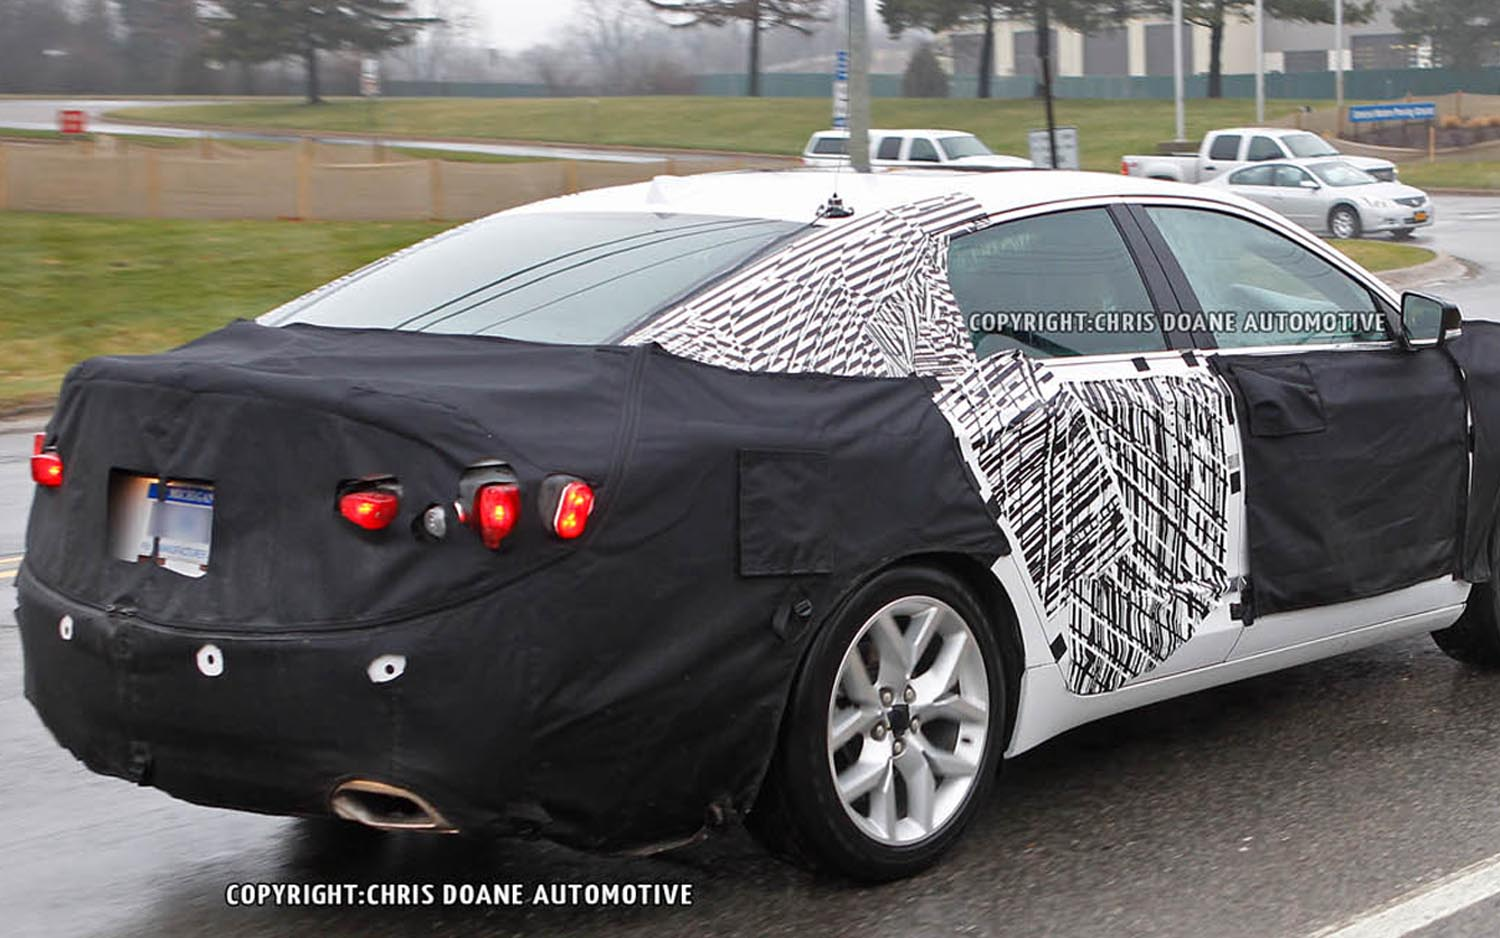 2013 Chevrolet Impala Spied Rear Three Quarter AMAG1